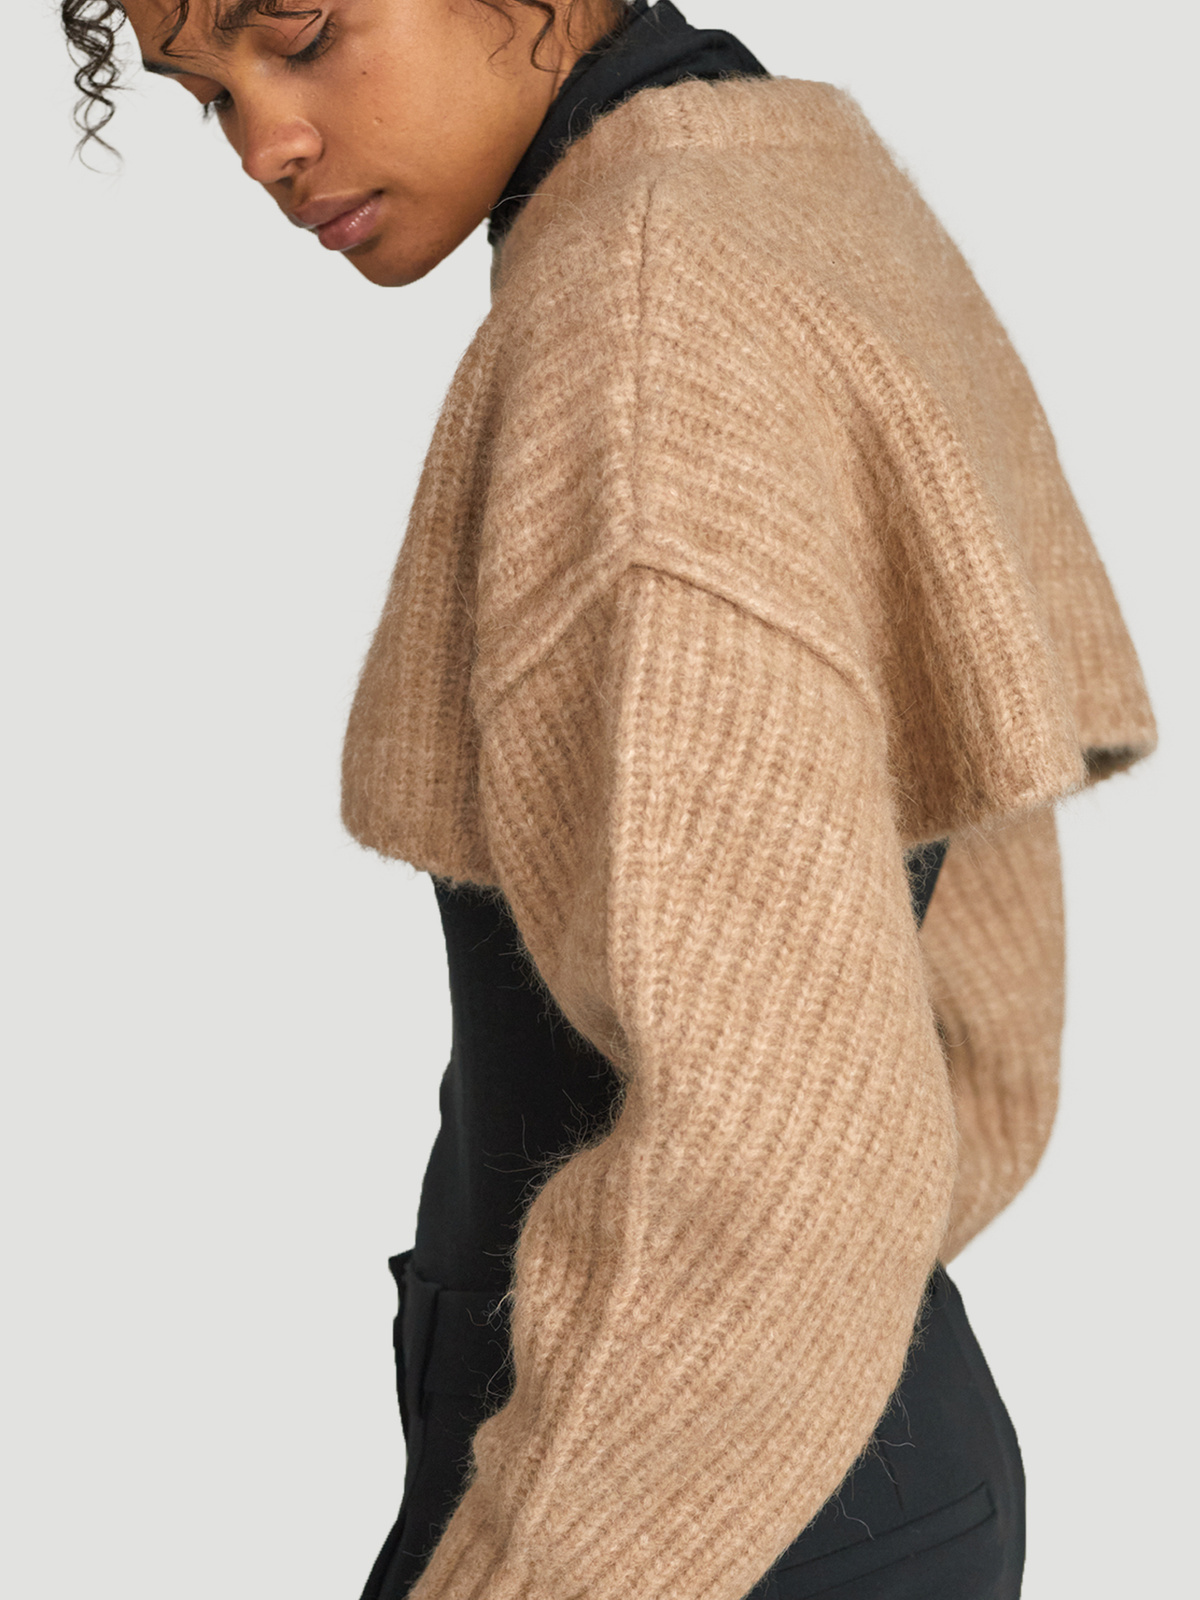 Bored Cropped Knit  Sand 3